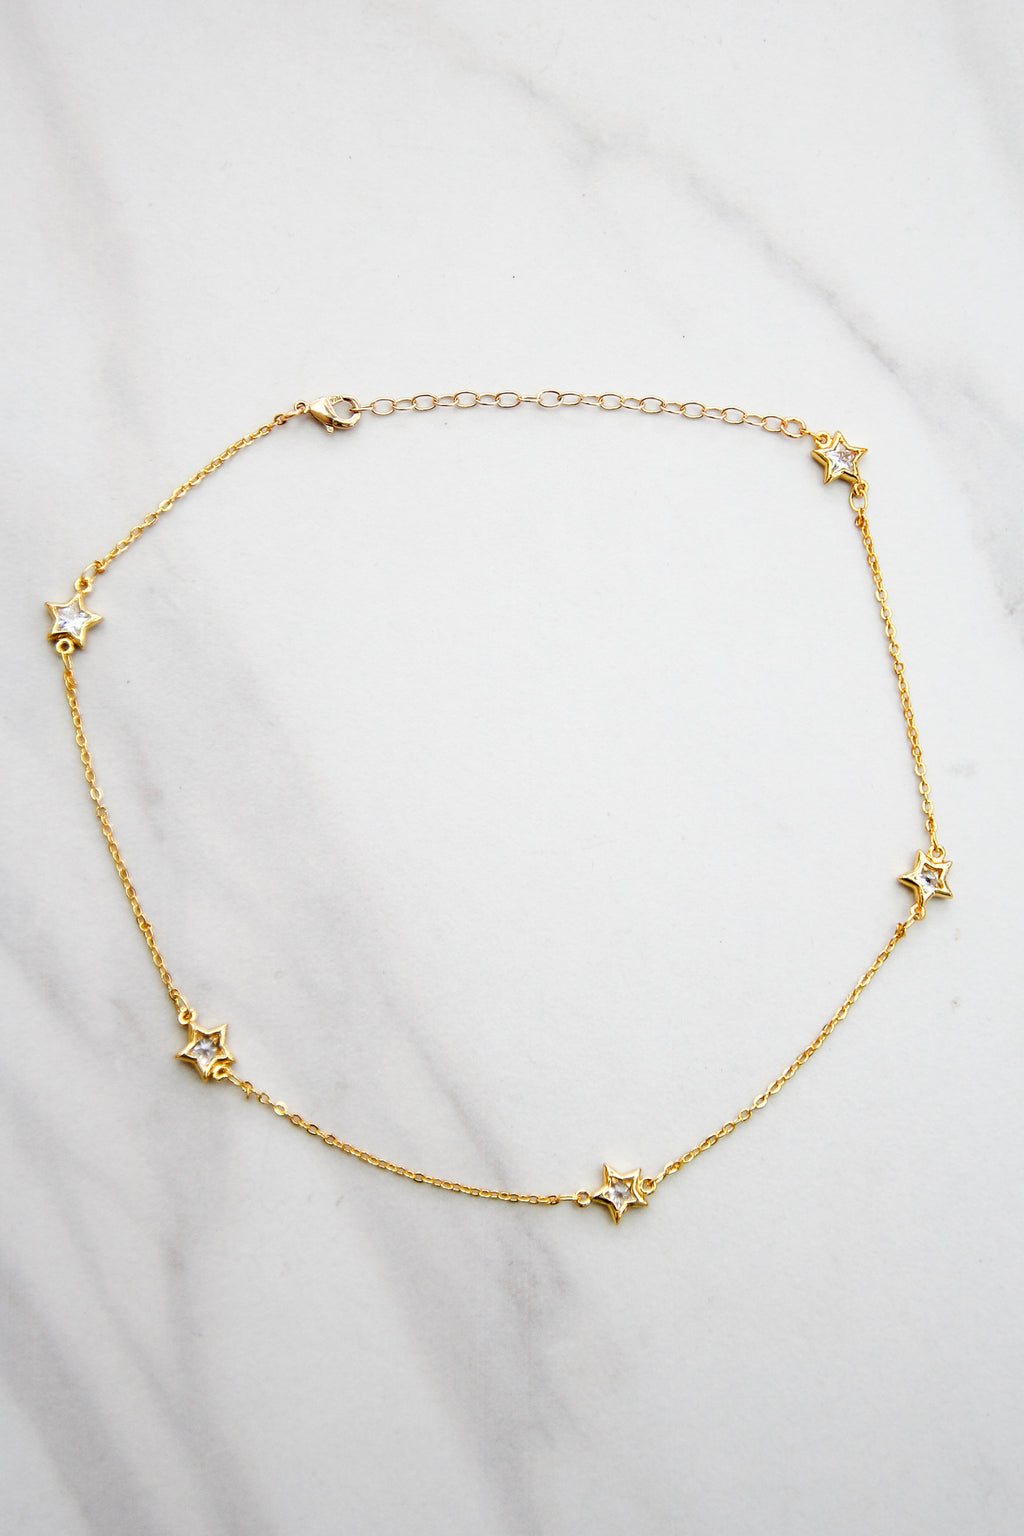 Rewrite The Stars Choker - Gold